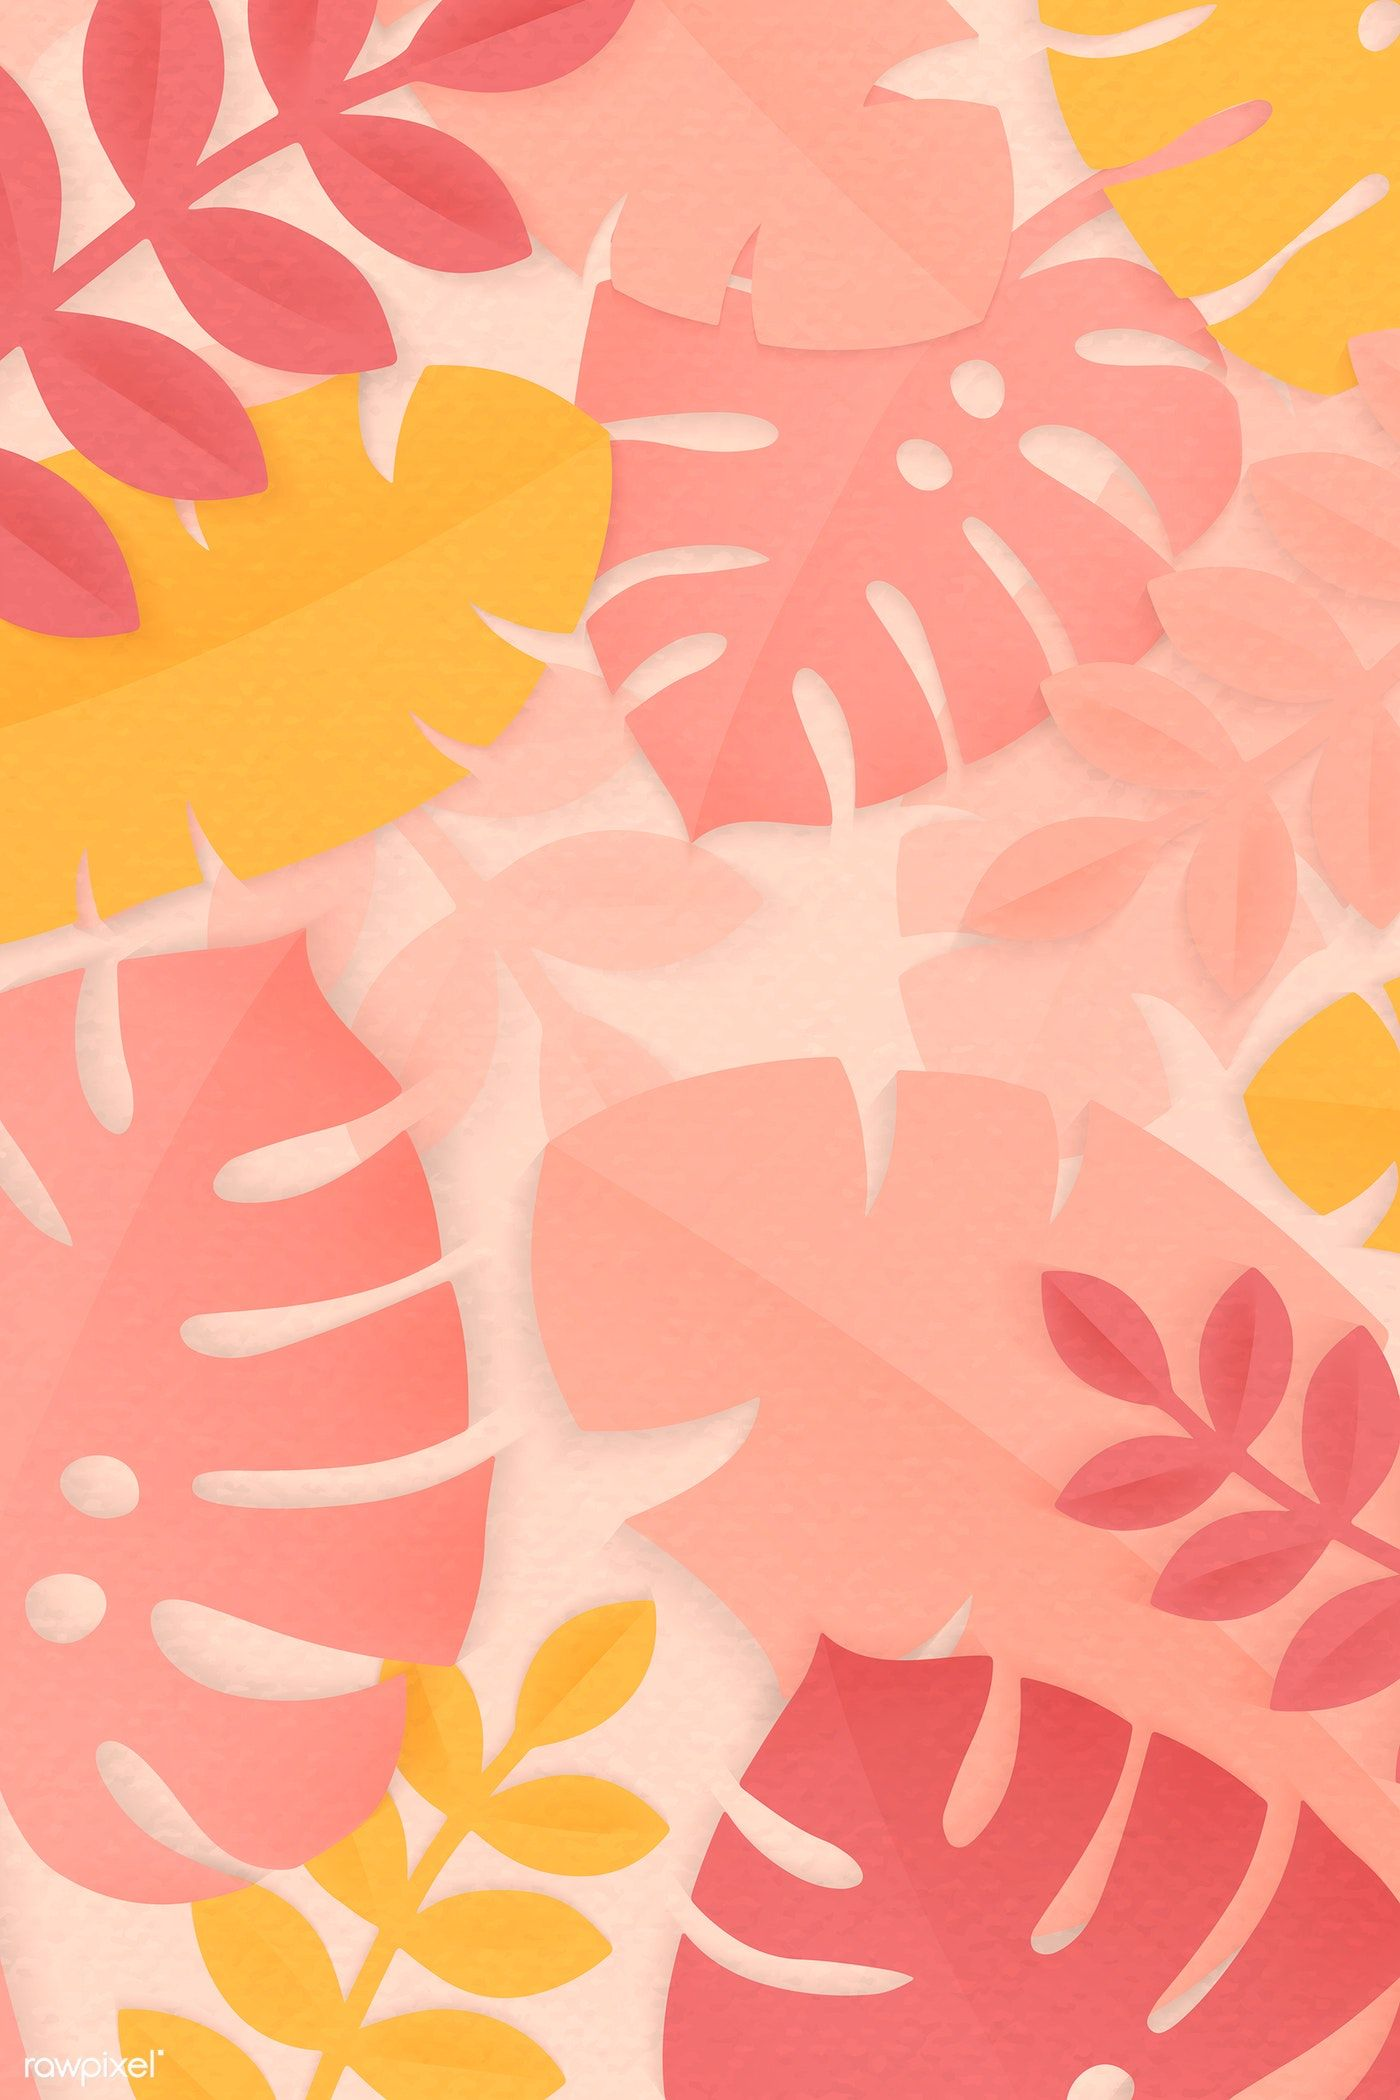 Download premium vector of Pink tropical leaves patterned on a pastel